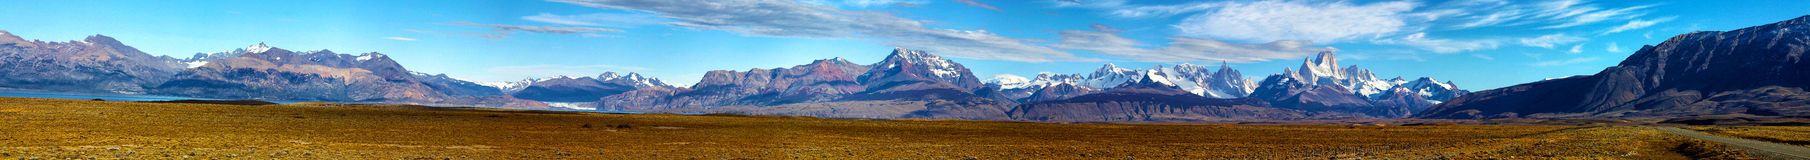 Panorama of Fitz Roy, Patagonia, Argentina Royalty Free Stock Images